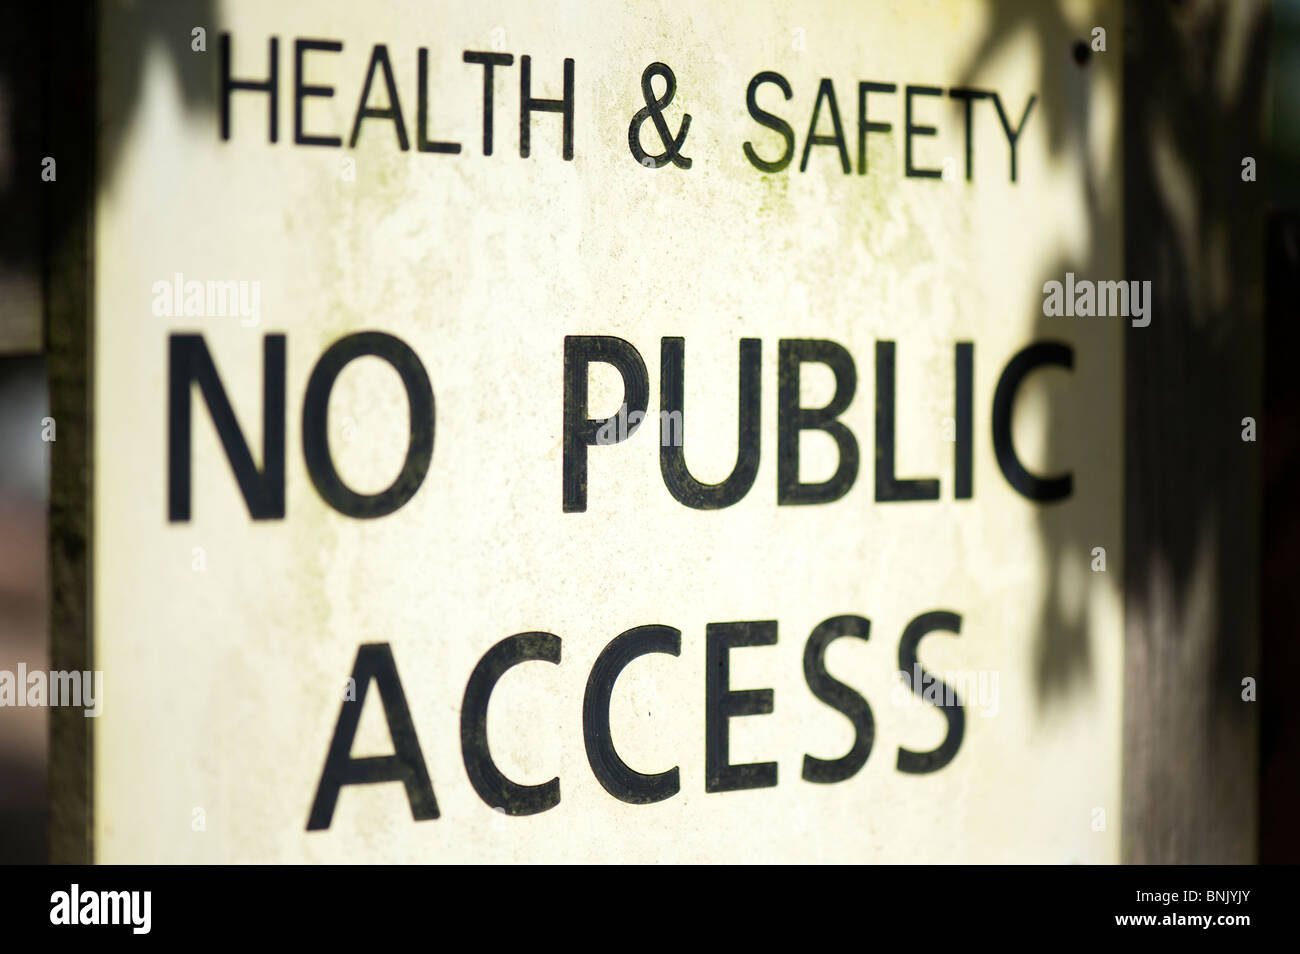 Health and Safety, No public Access sign. UK - Stock Image